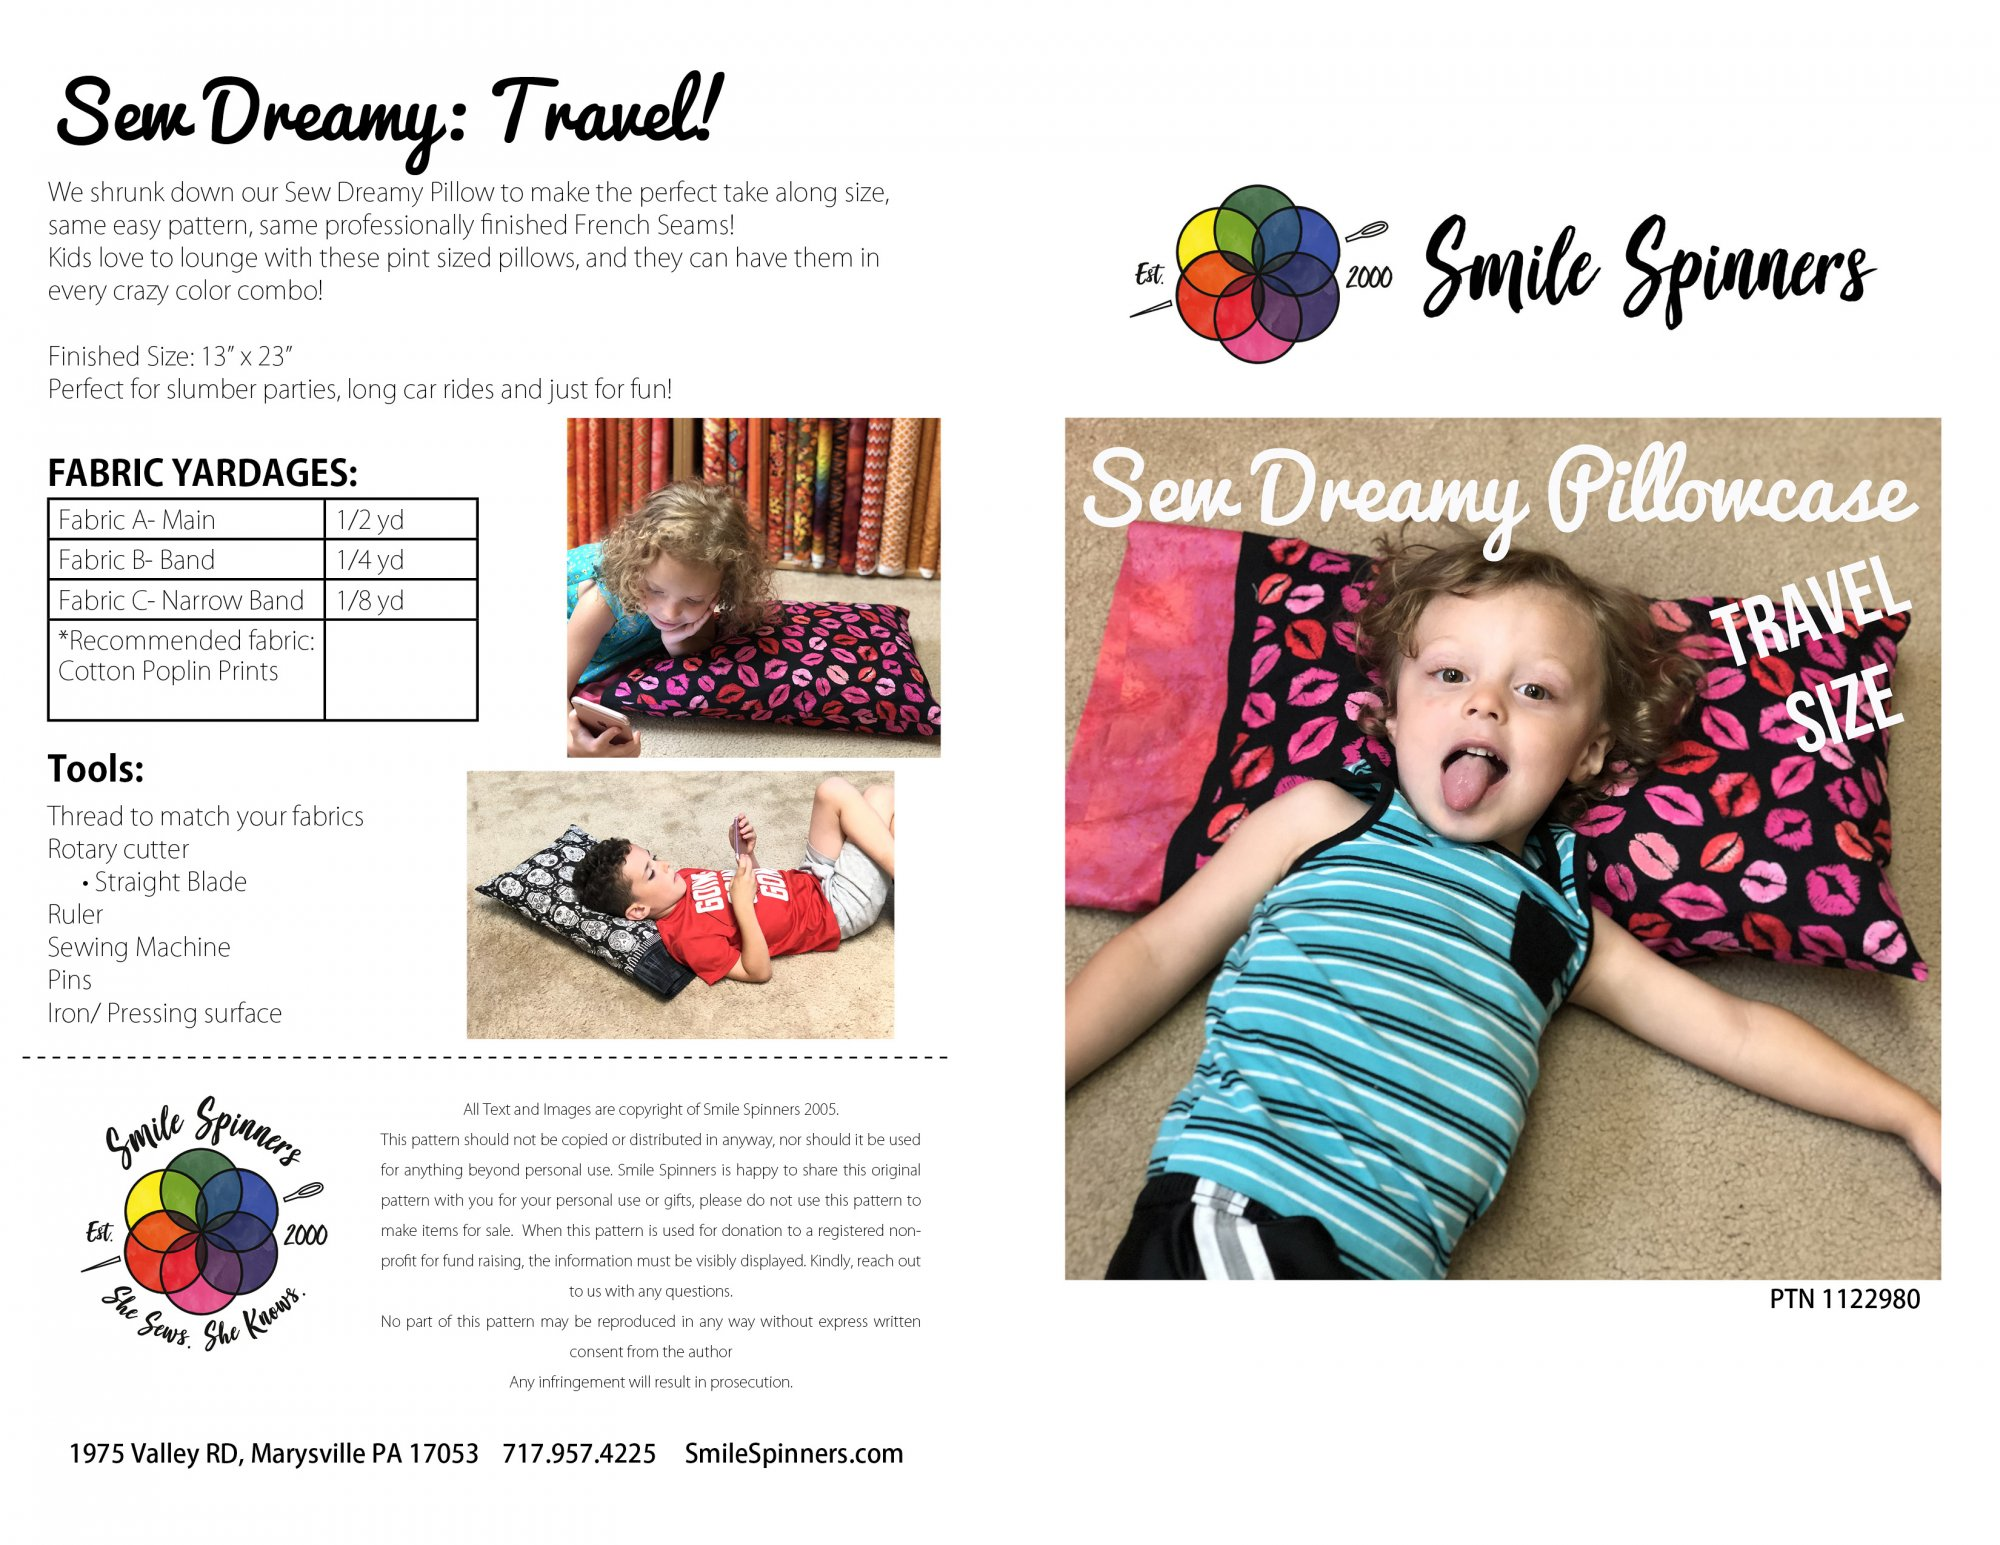 Sew Dreamy: Travel